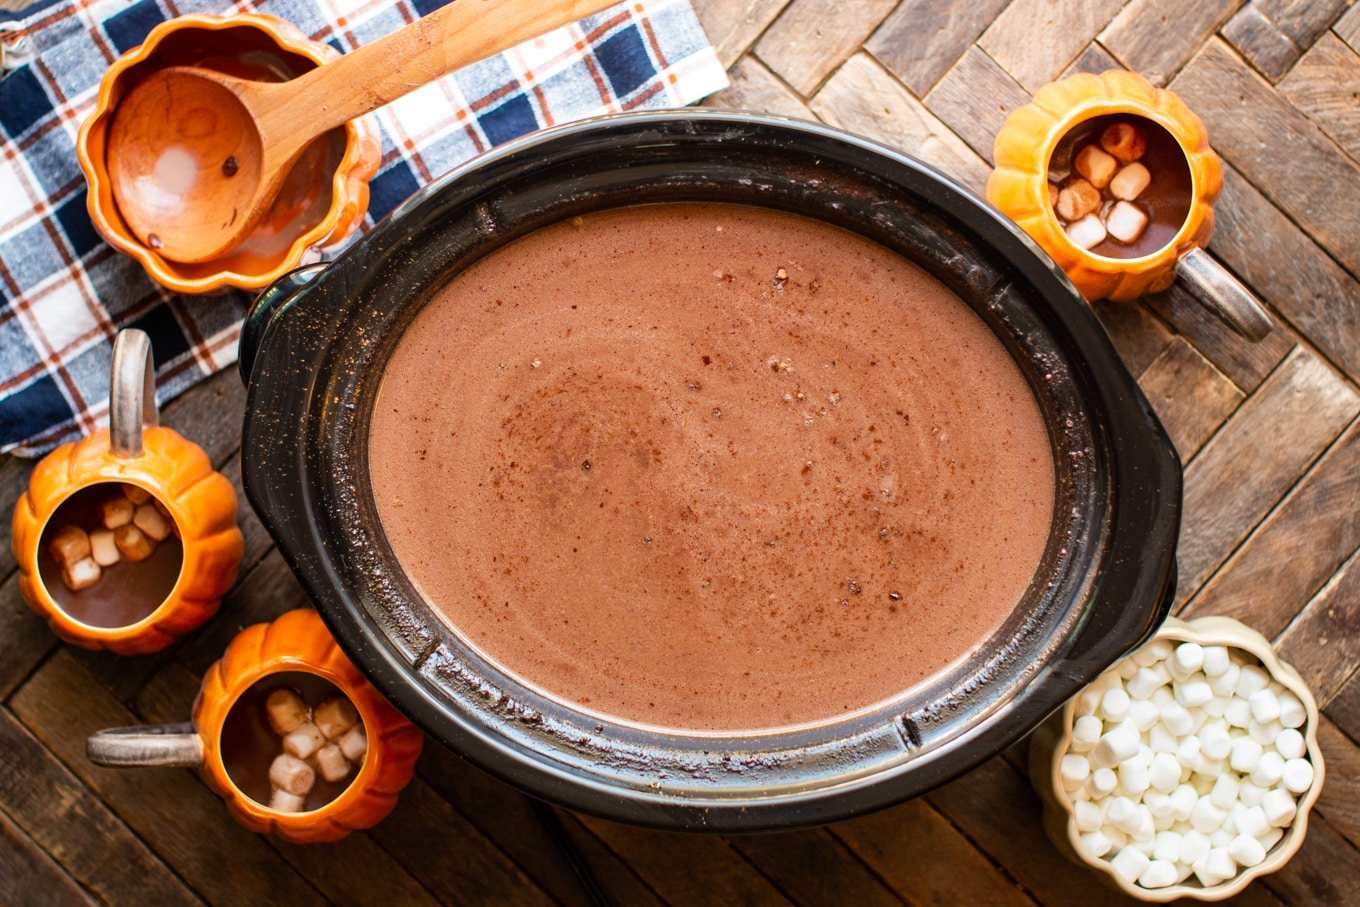 rich and creamy hot chocolate in slow cooker with pumpkin mugs around it.